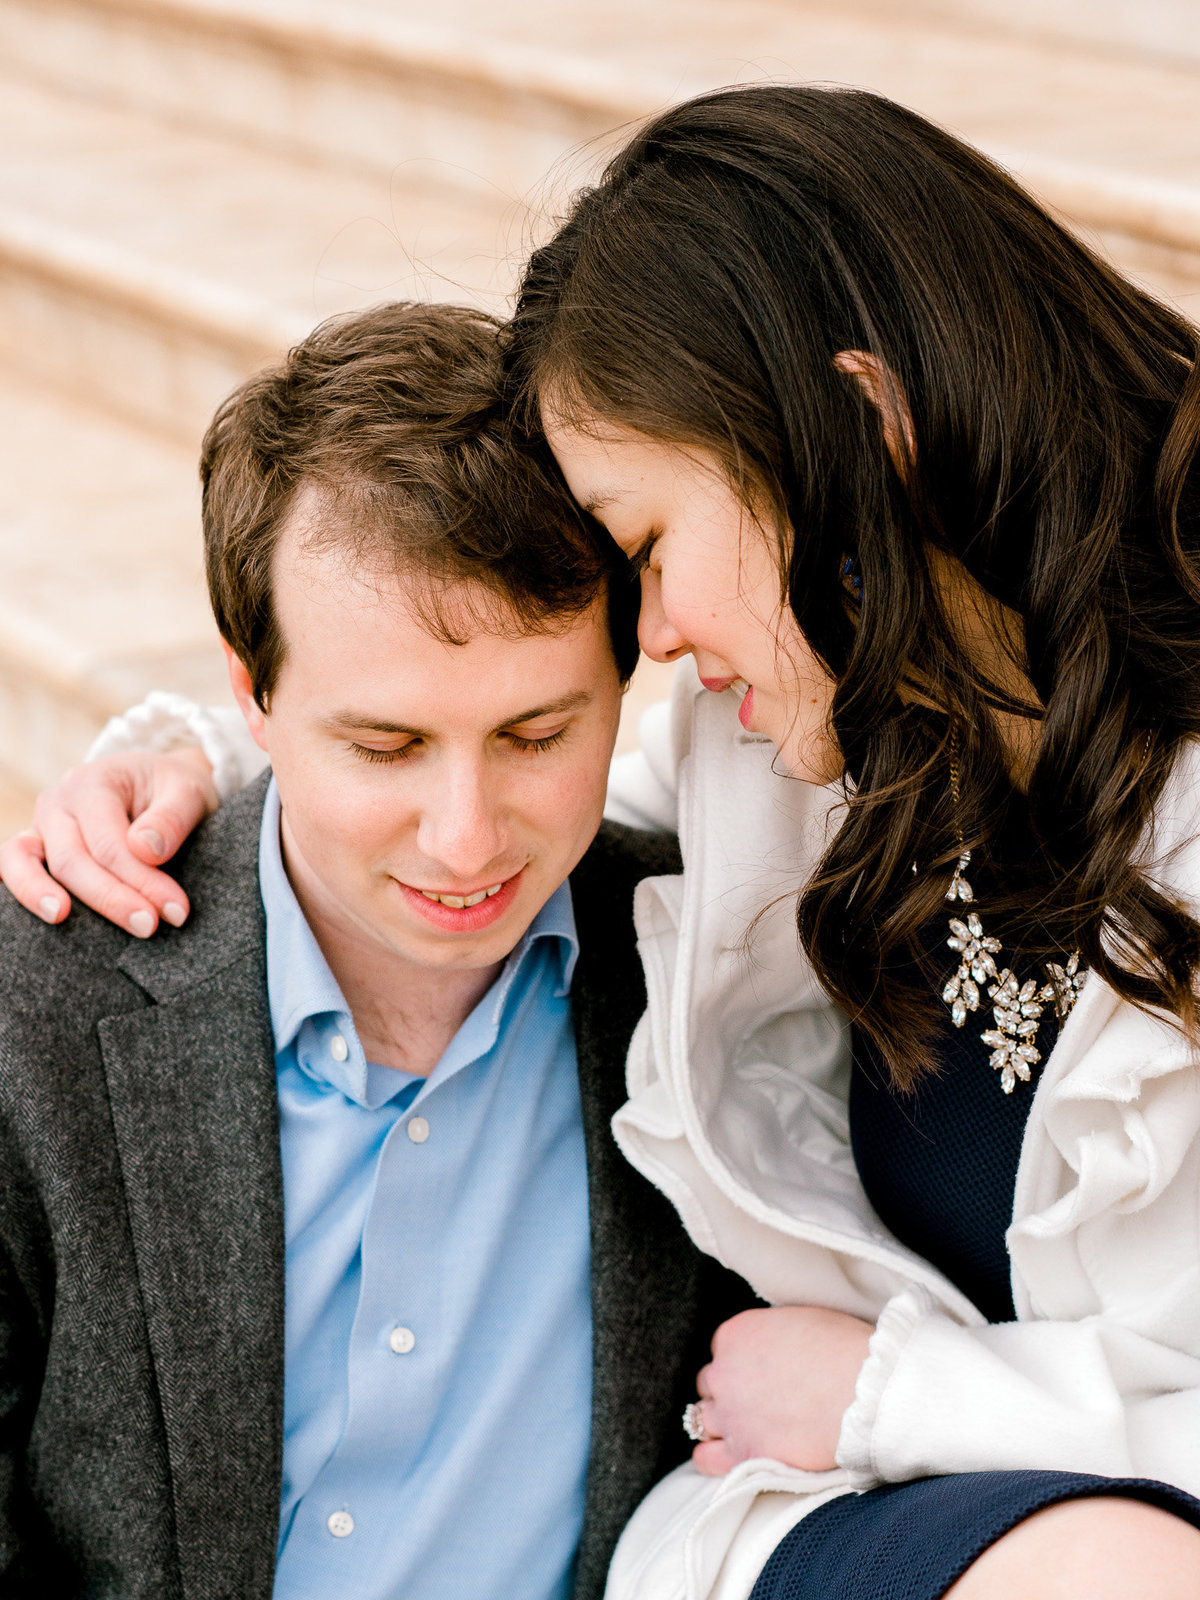 FACEBOOK-Monica and Justin Engagement Session-14